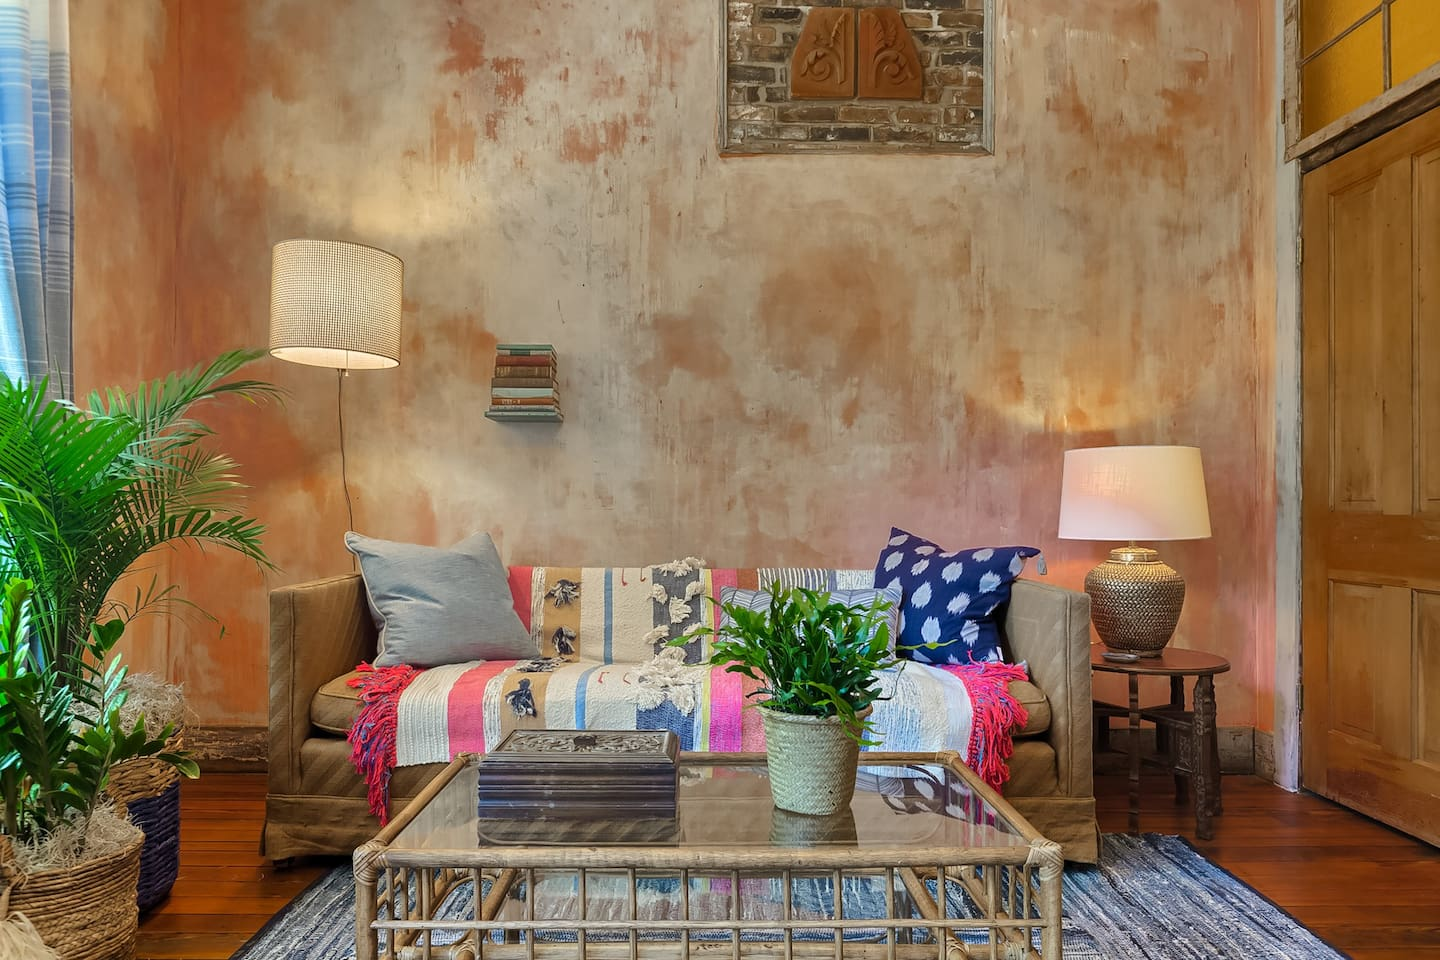 Boho Nest in Historic Soulard - Apartments for Rent in St. Louis ...